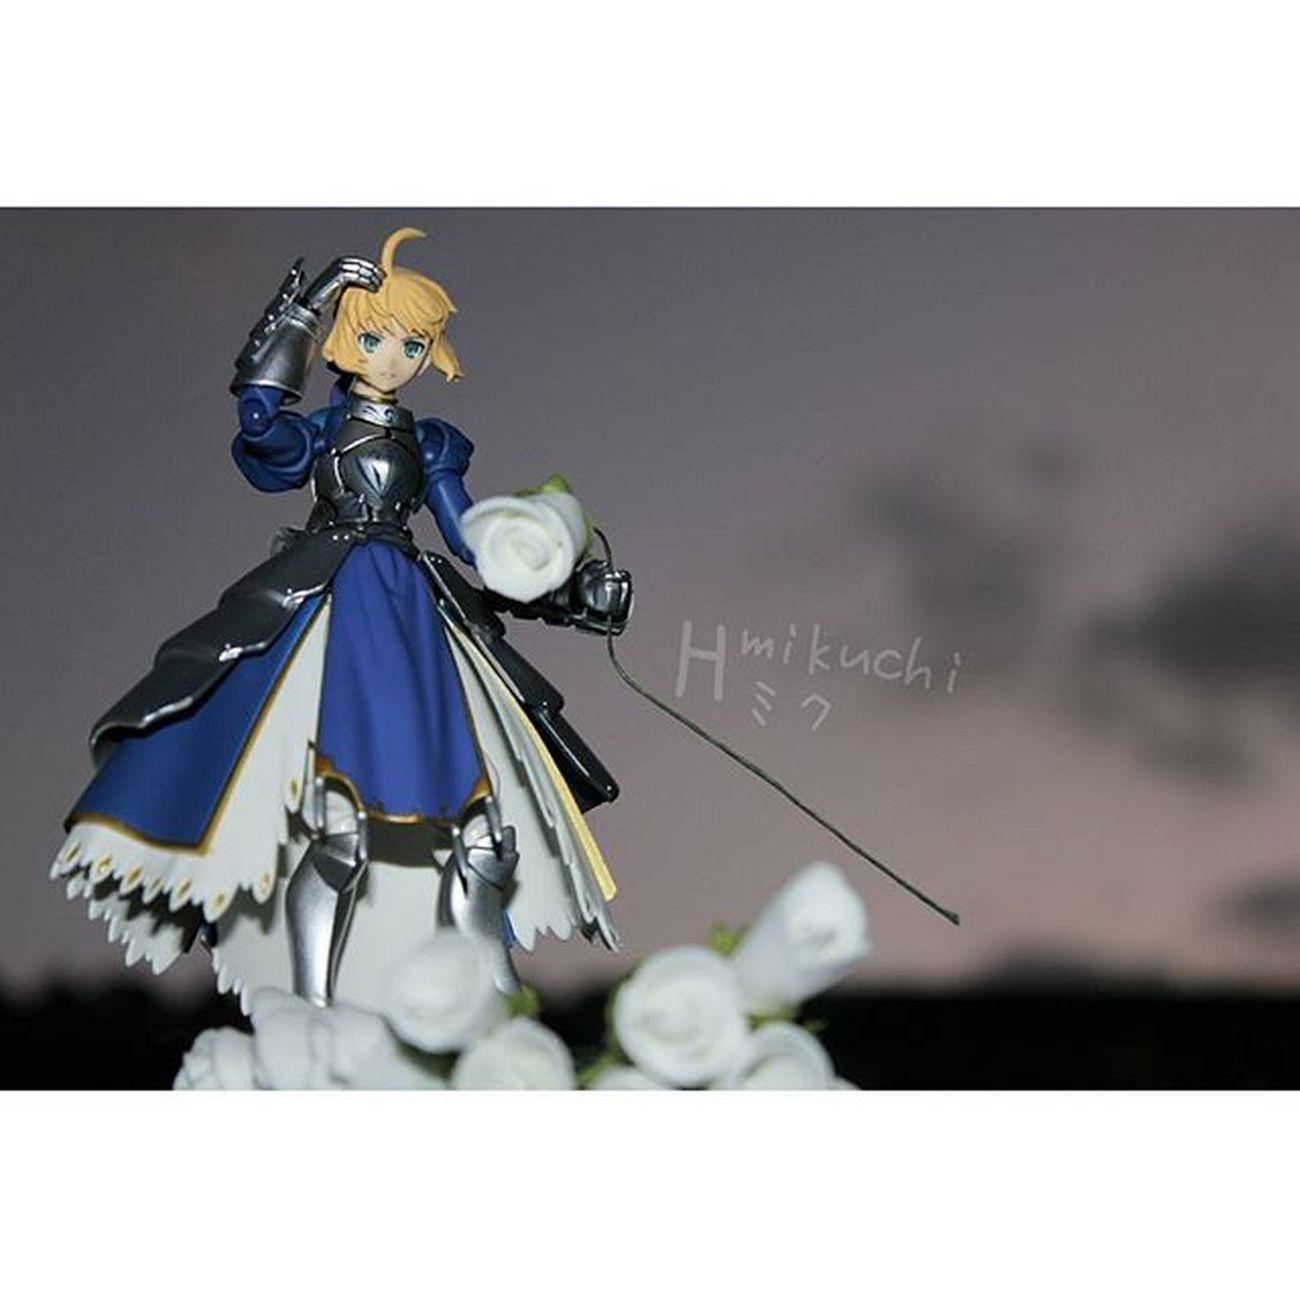 Saber: where is my sword. This is not my sword 😲 Me: 😂 Toypops2 Toyelites ToyRevolutioner TRFamily Anarchyalliance Toyboners Toysyn Echo_of_my_heart Toydiscovery Bishoujoheaven Toyunion Handinhand_jptoys Jj_toys Toypops Toyrevolution Toygroup_alliance Toyartistry_elite Toyofig Toychronicles Toptoyphotos Toyplanet Tcb_bigbanglove Saber Figma